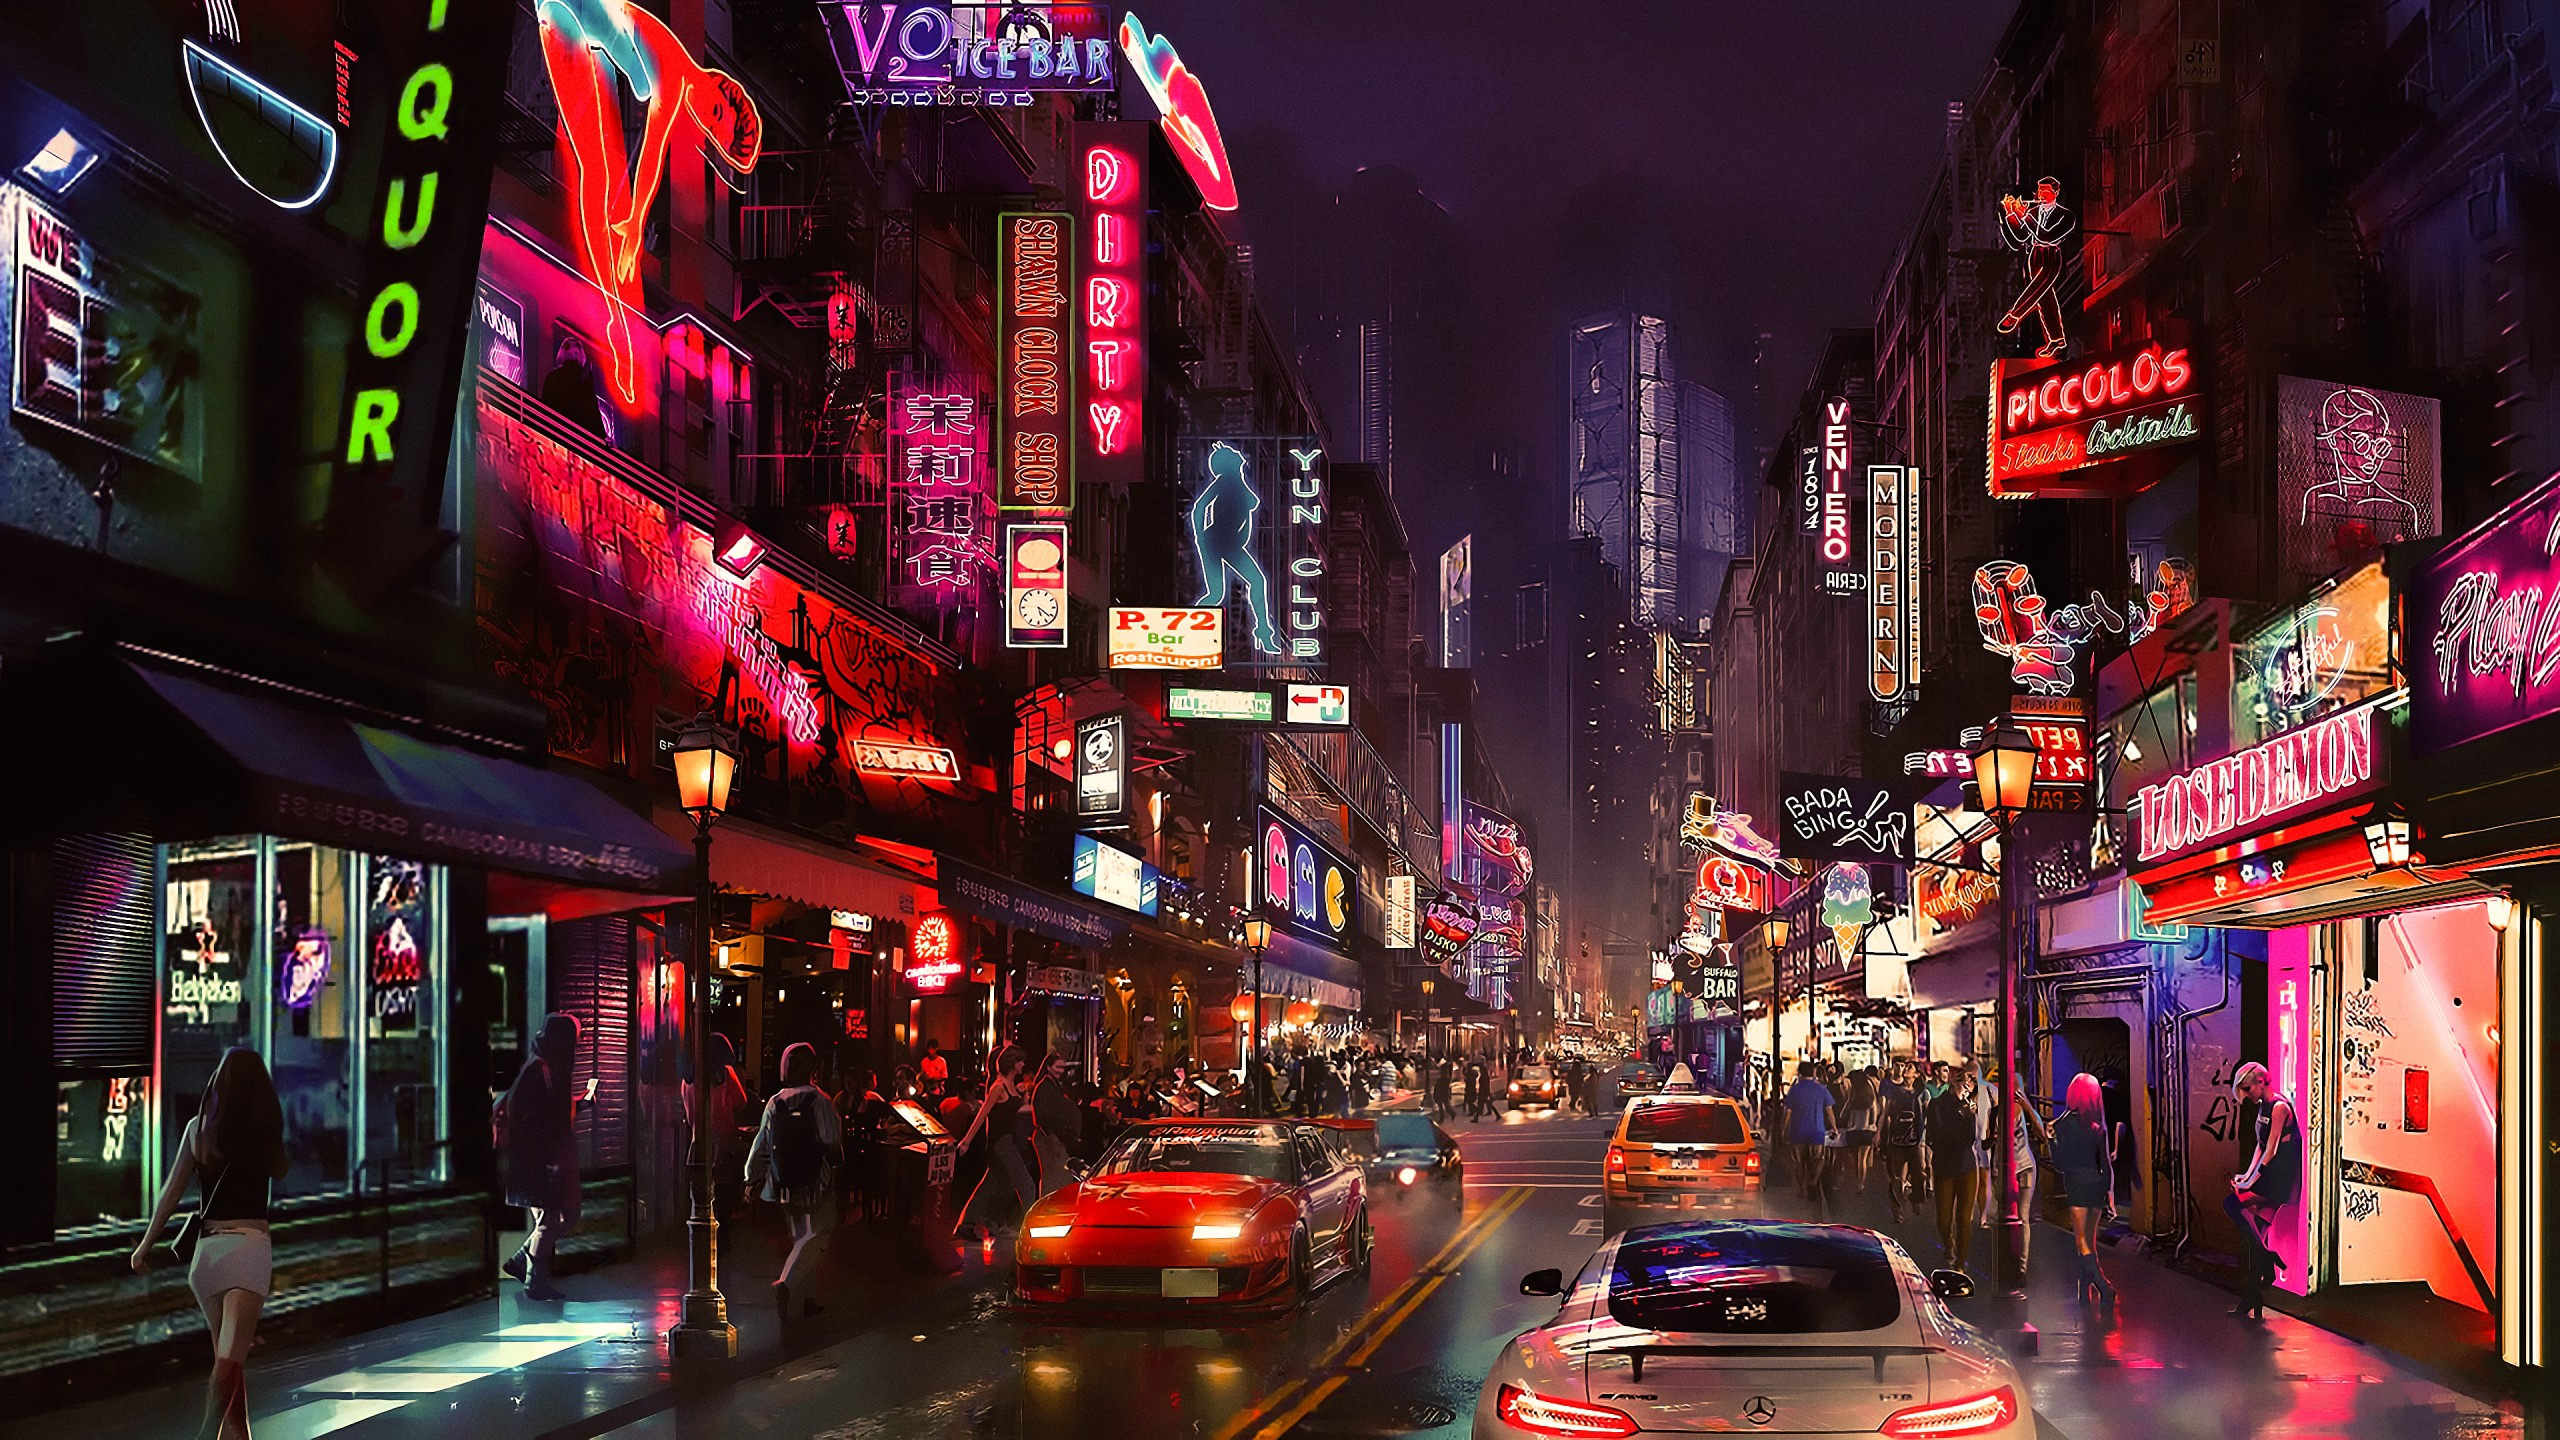 Wallpaper Cyberpunk Future World 4k Art 20320